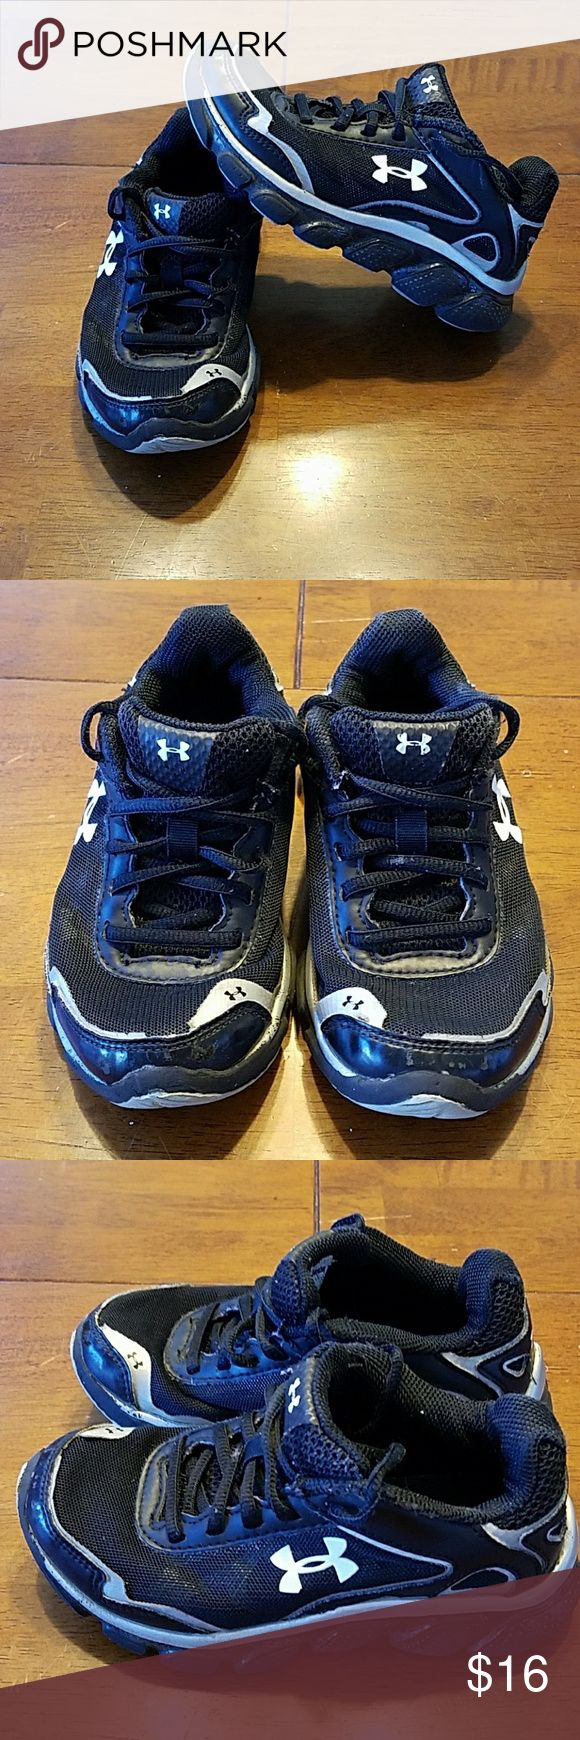 Under Armour black tennis shoes toddler size 11 Good used condition. Very clean! Under Armour Shoes Sneakers #tennisshoes